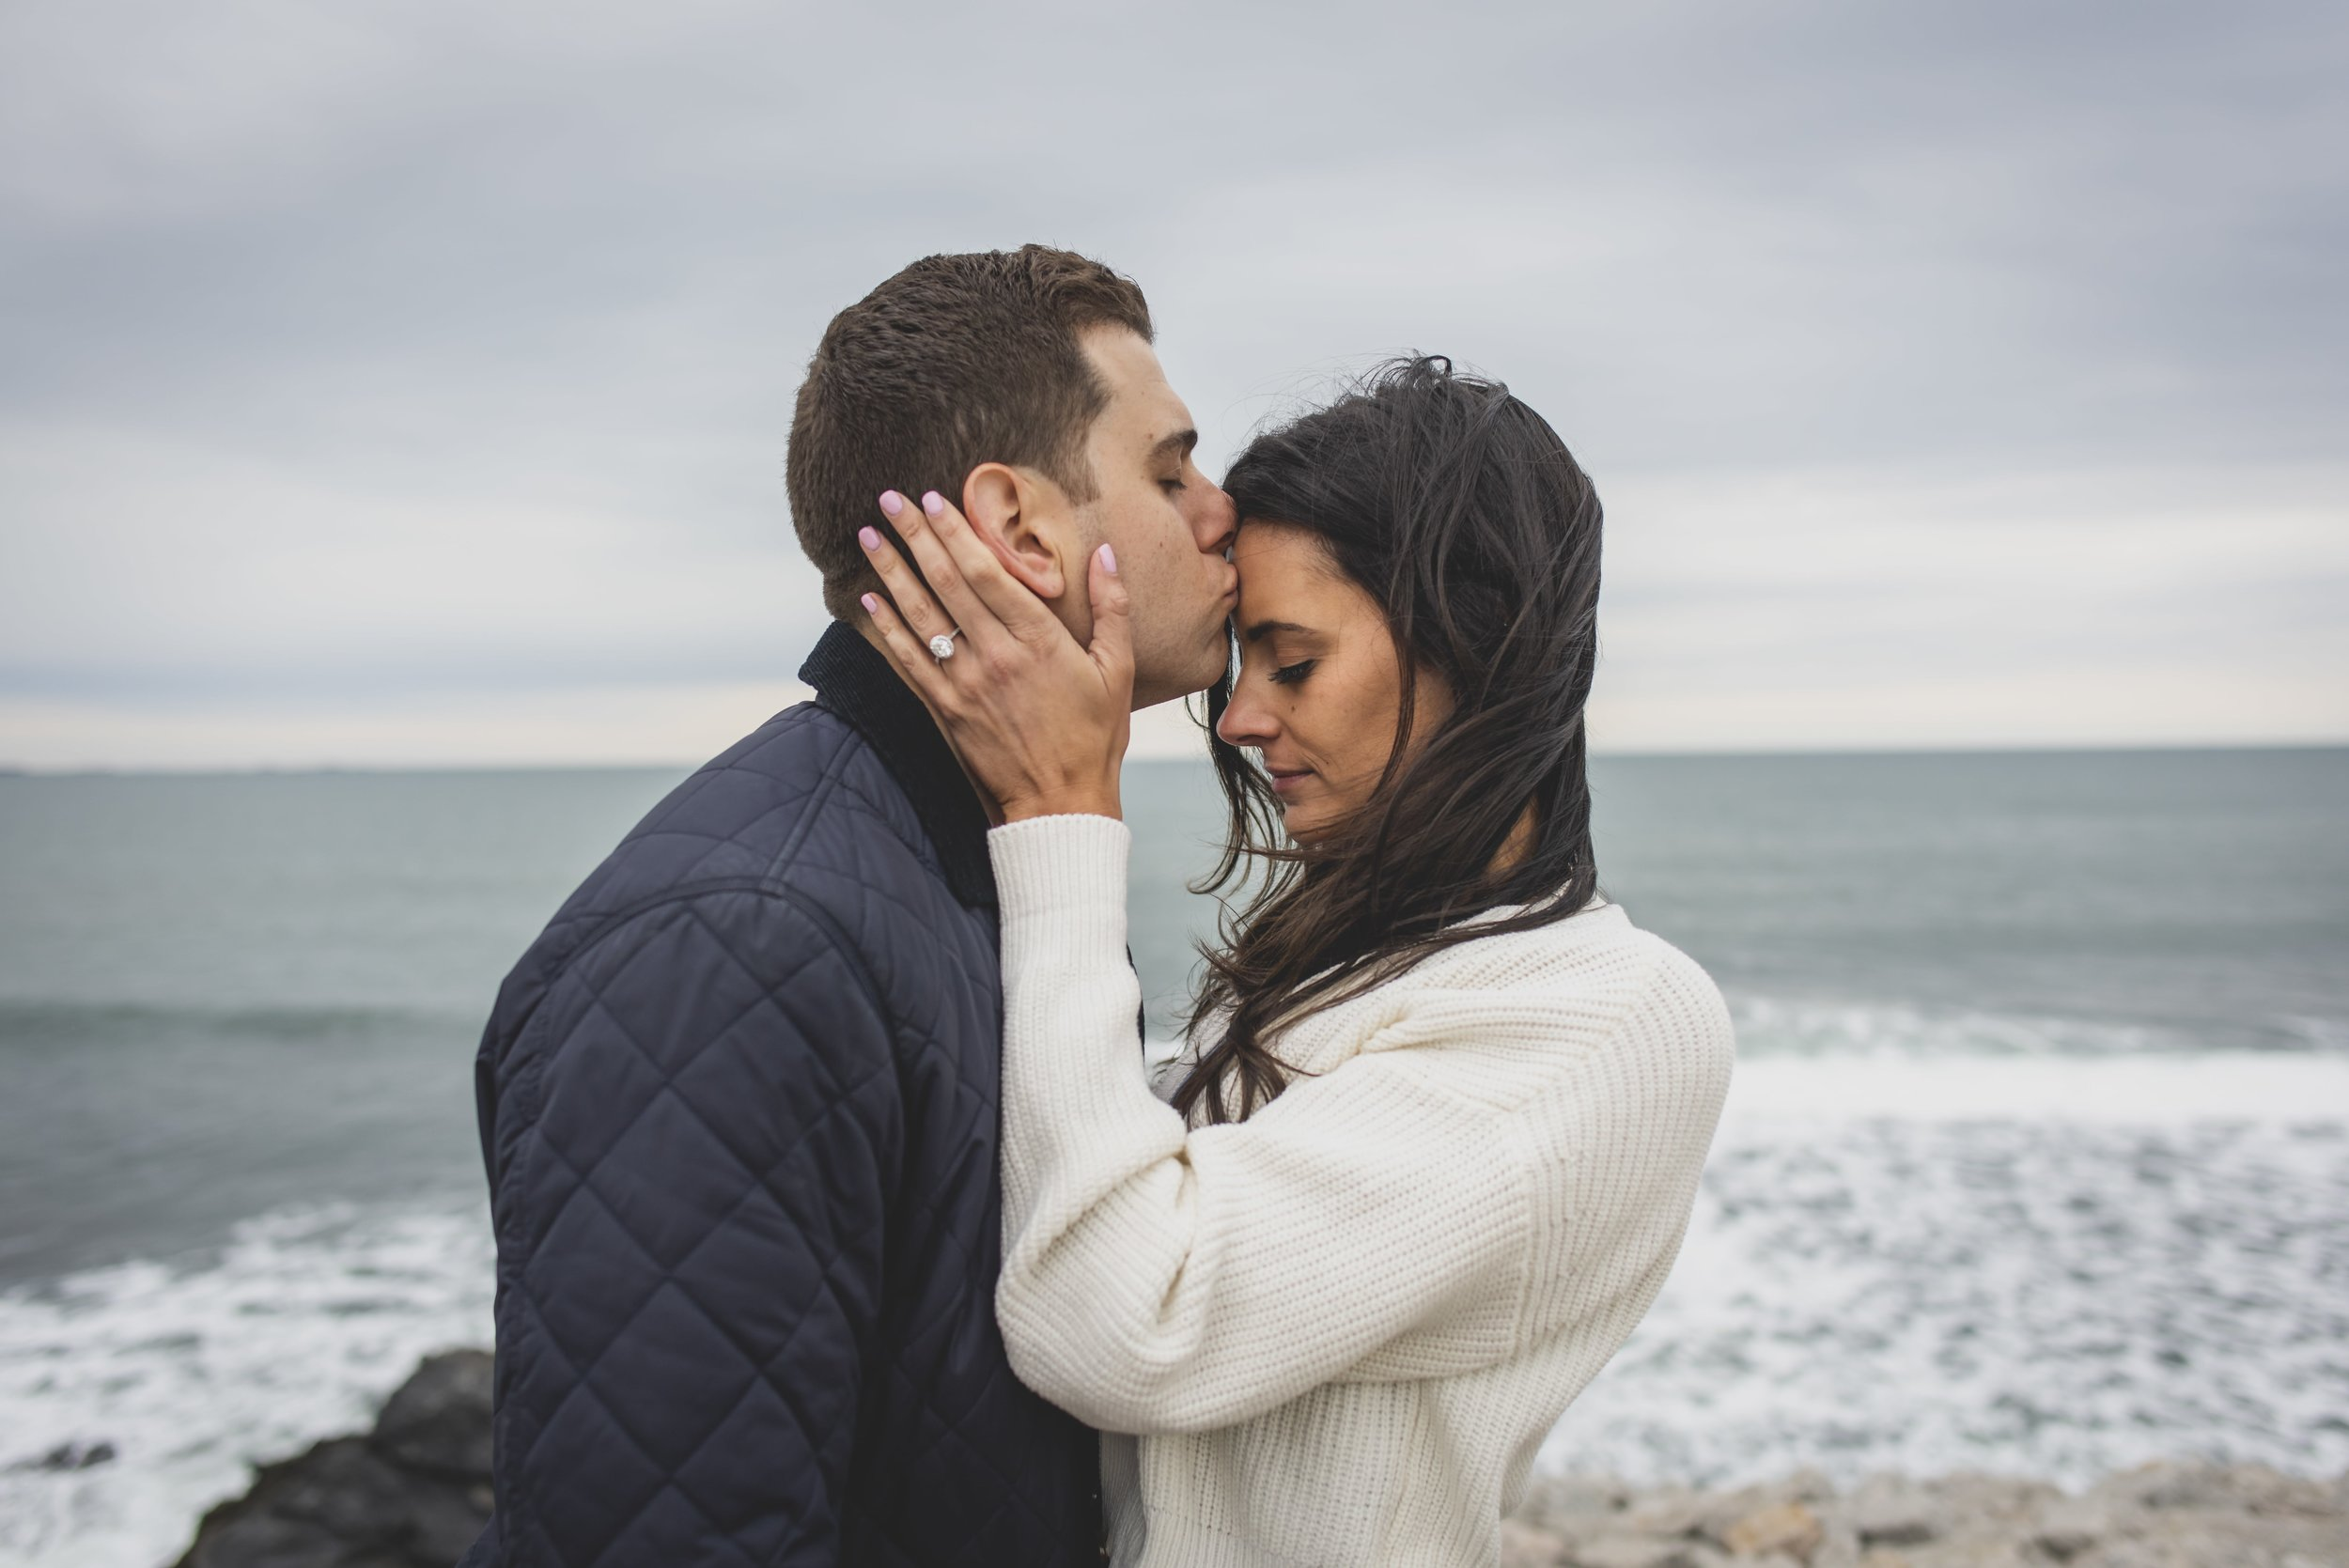 Engagement Photography Services - Castle Hill Lighthouse, Newport, RI - Future groom kissing future bride on the forehead.